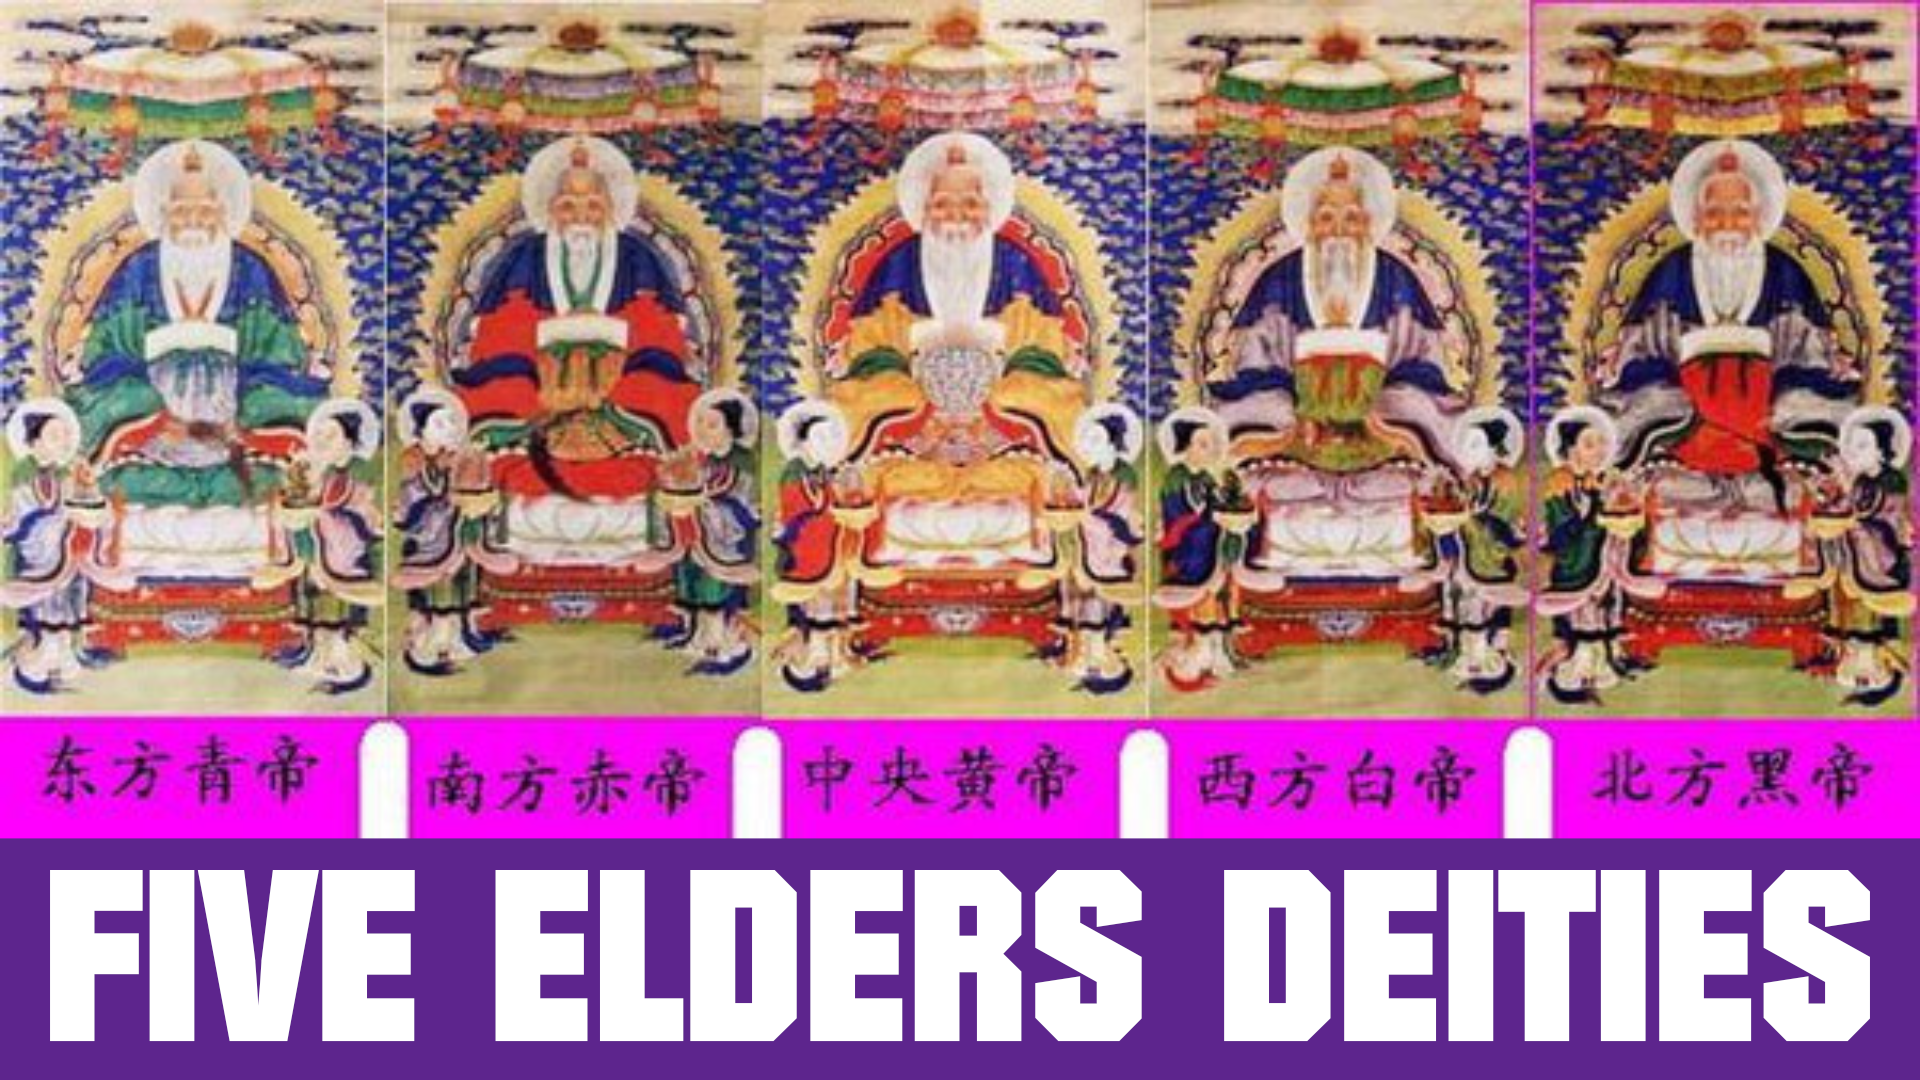 Taoism Five Elders Deities